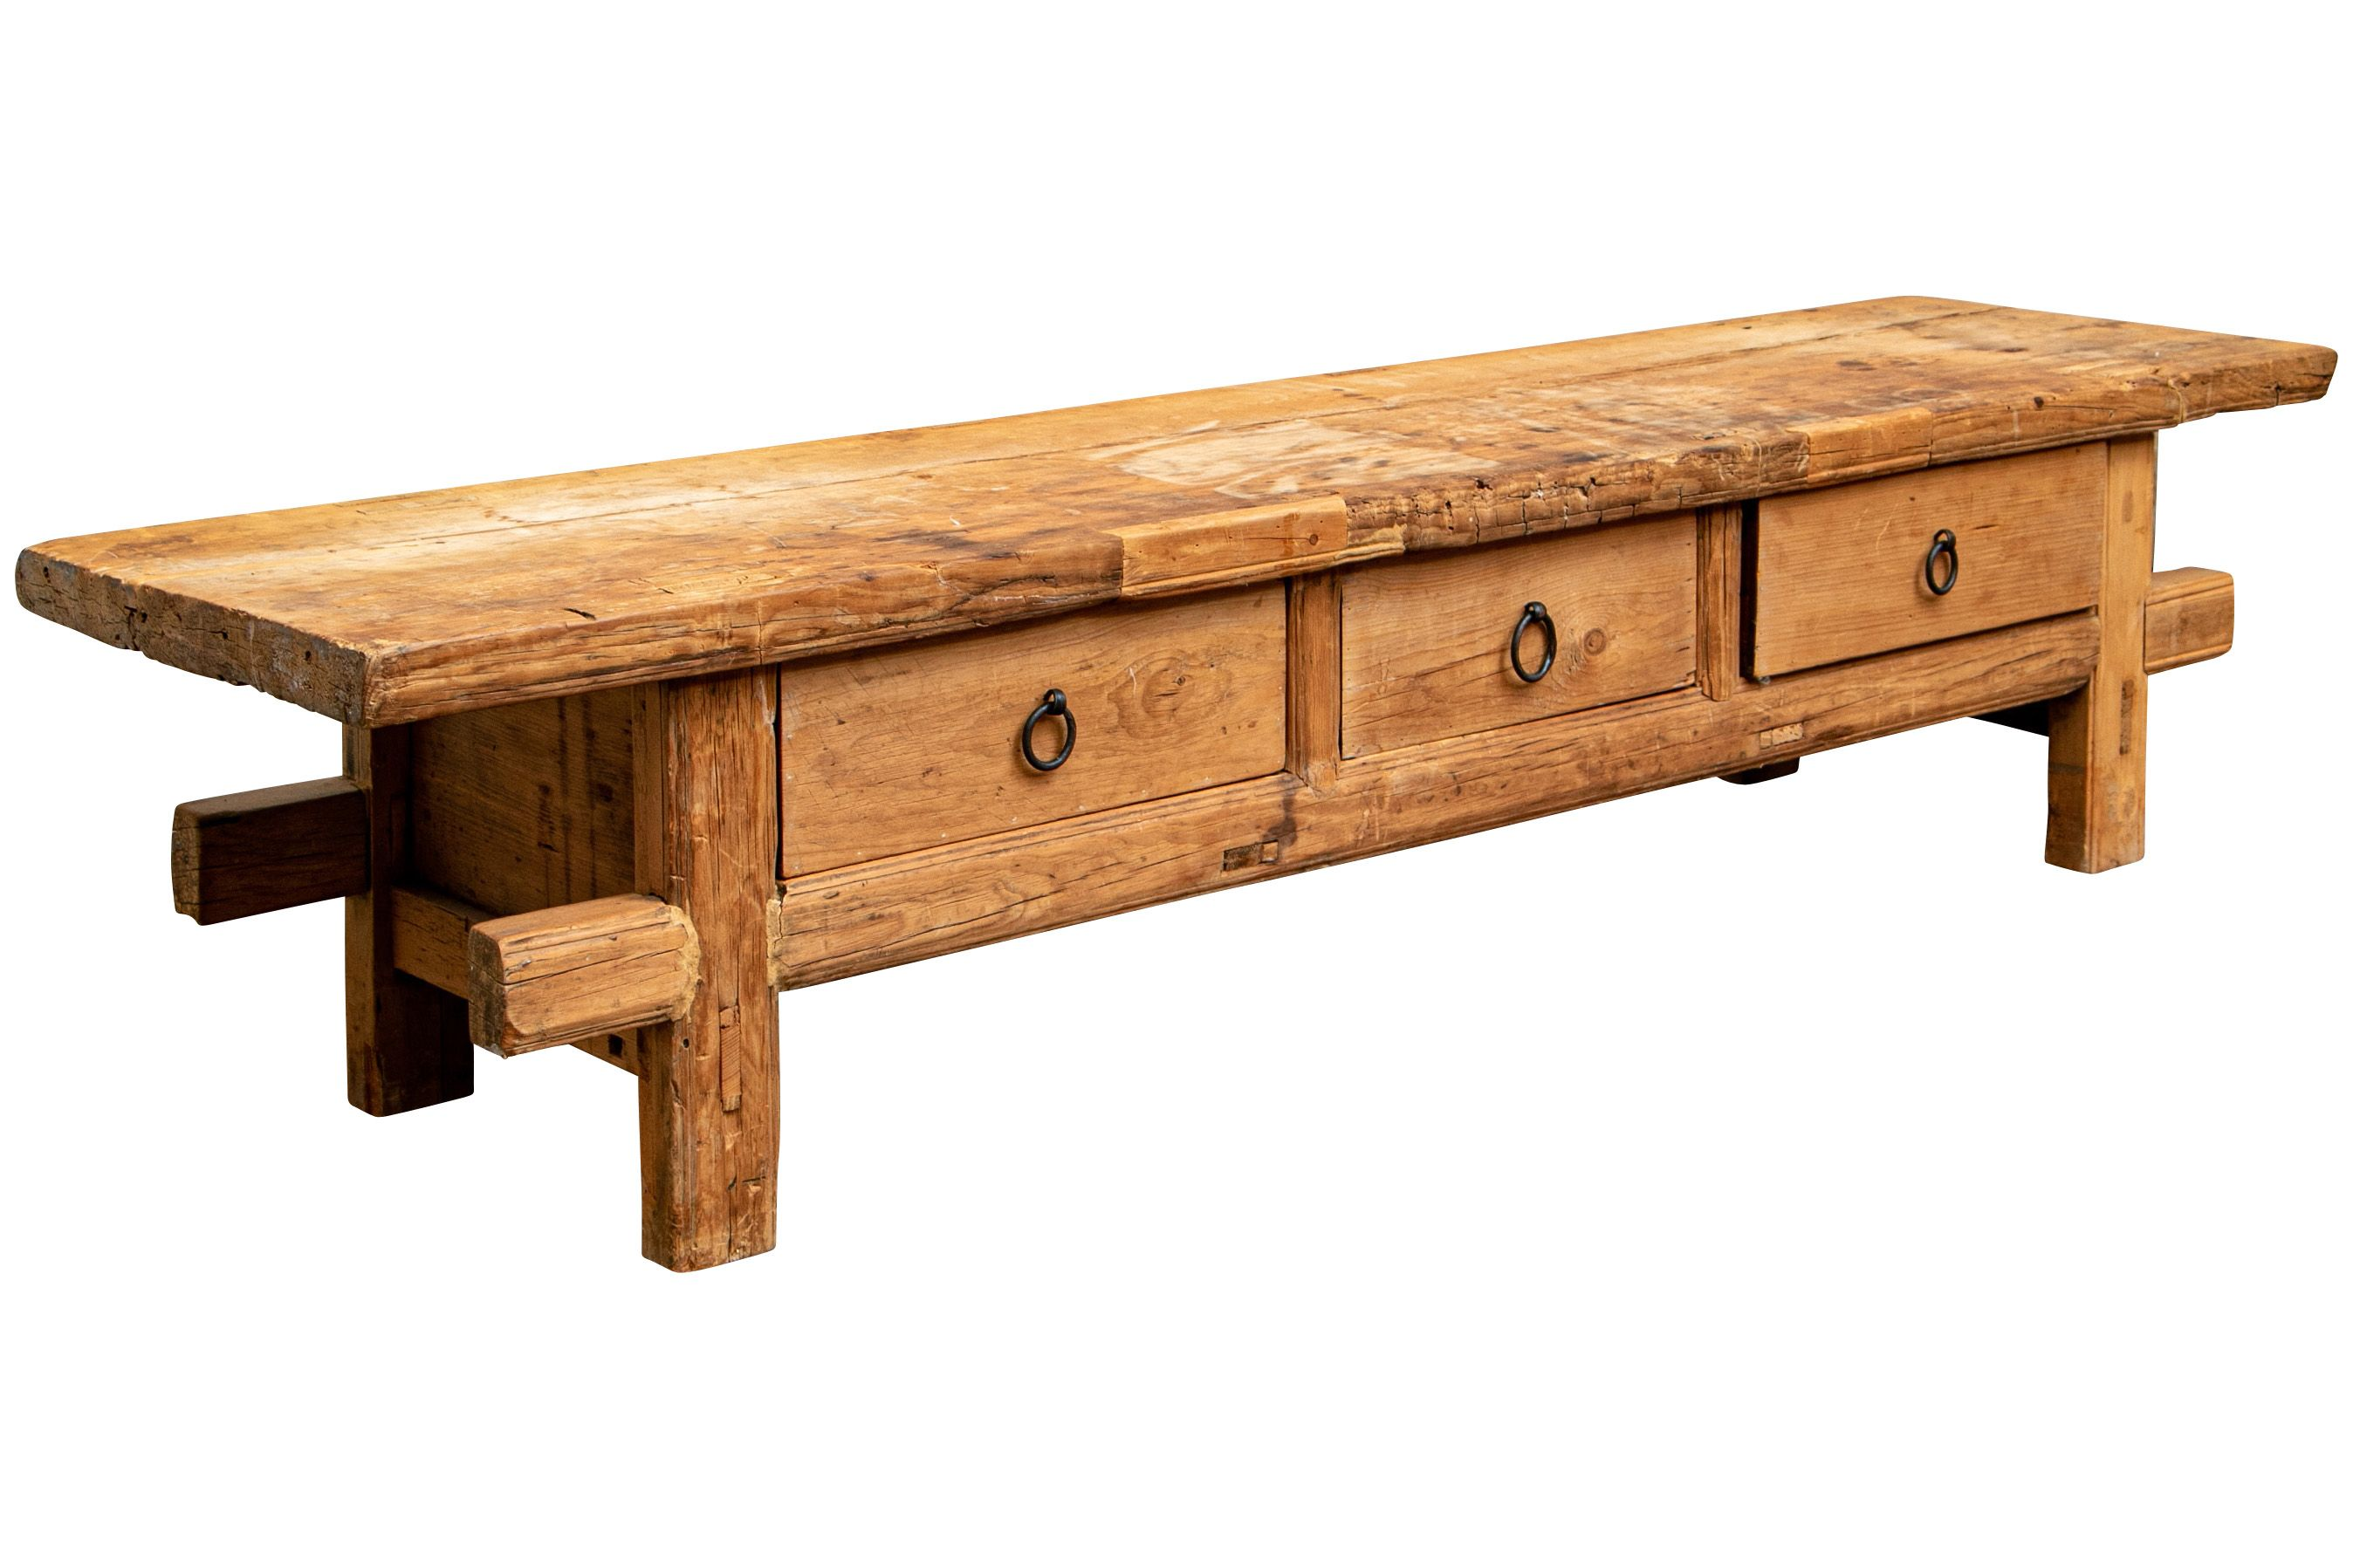 A Narrow Bench With Three Frieze Drawers Block Legs In One Piece With The Frame 0d 0al 82 1 2f2 22 2c Depth 20 1 2 Rustic Wood Bench Wood Bench Rustic Wood